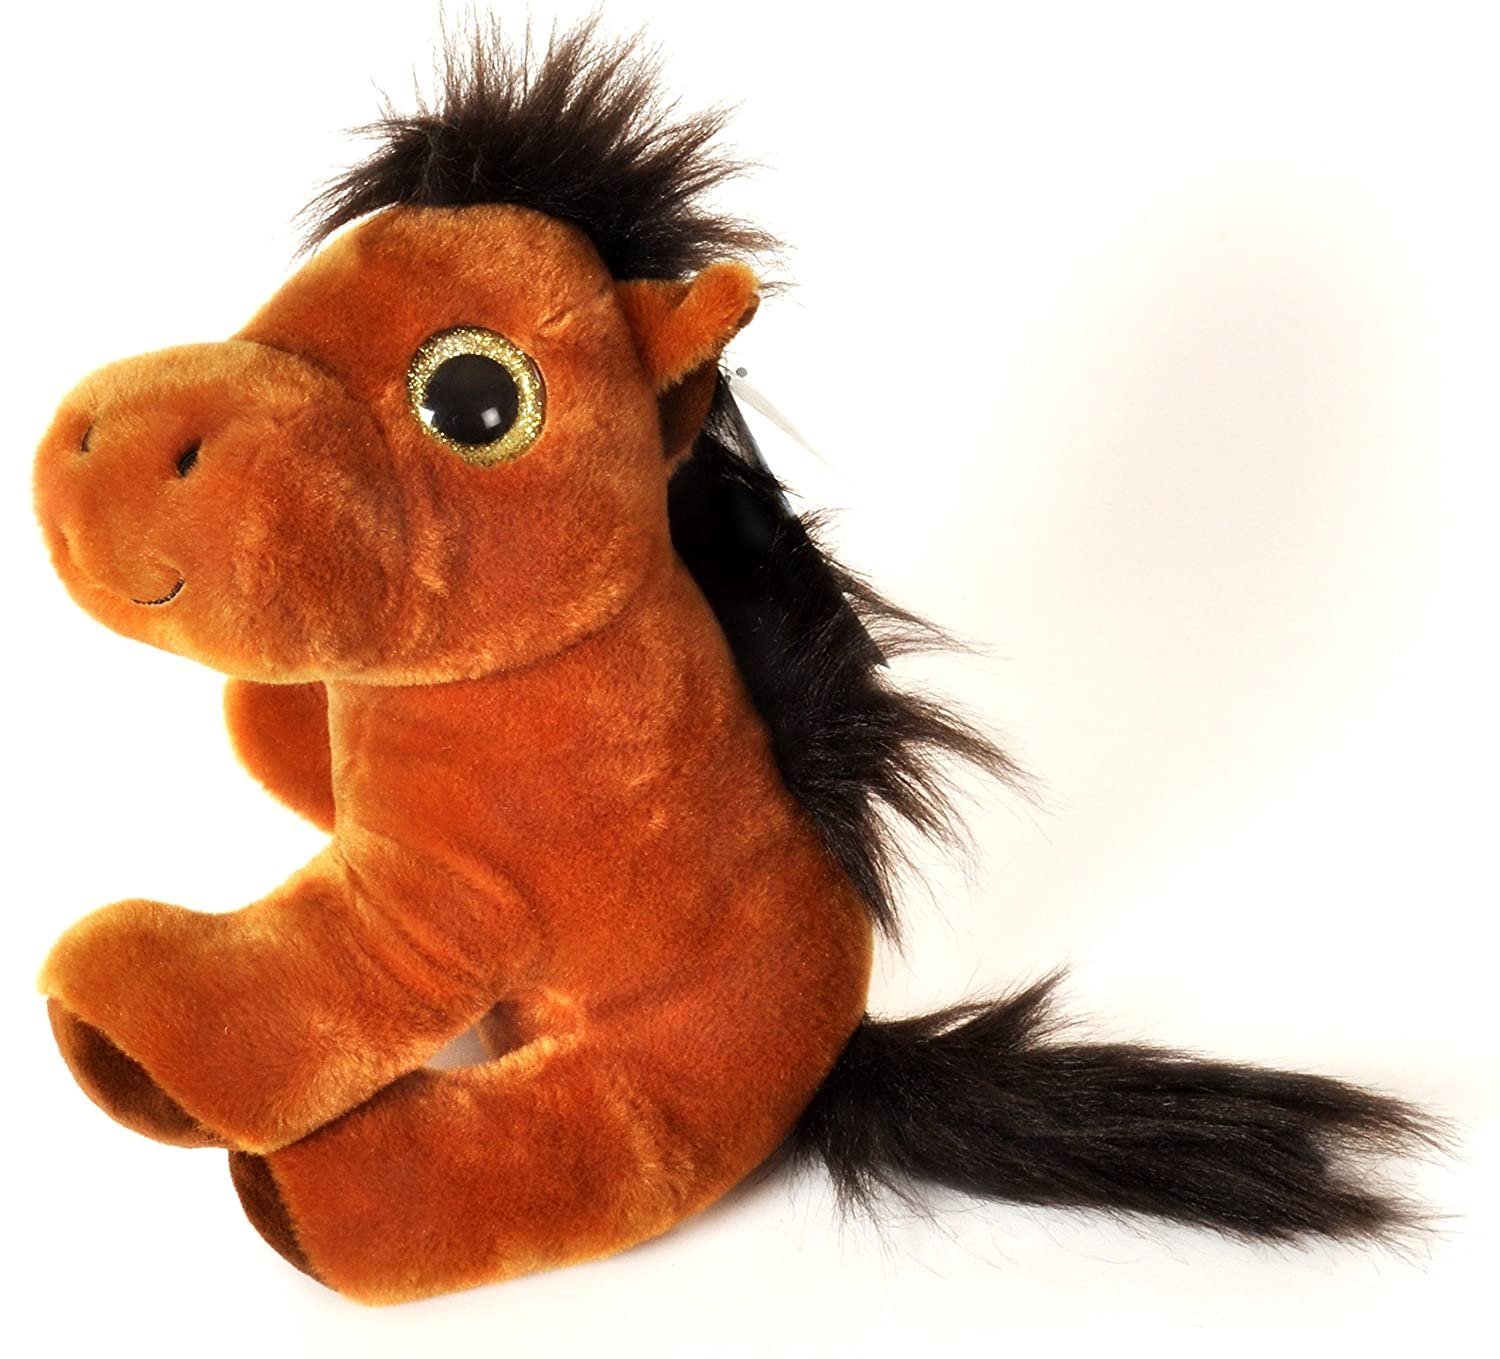 Amazon.com: ANIMALS ON THE FARM - Plush Toy Horse with shiny eyes (10